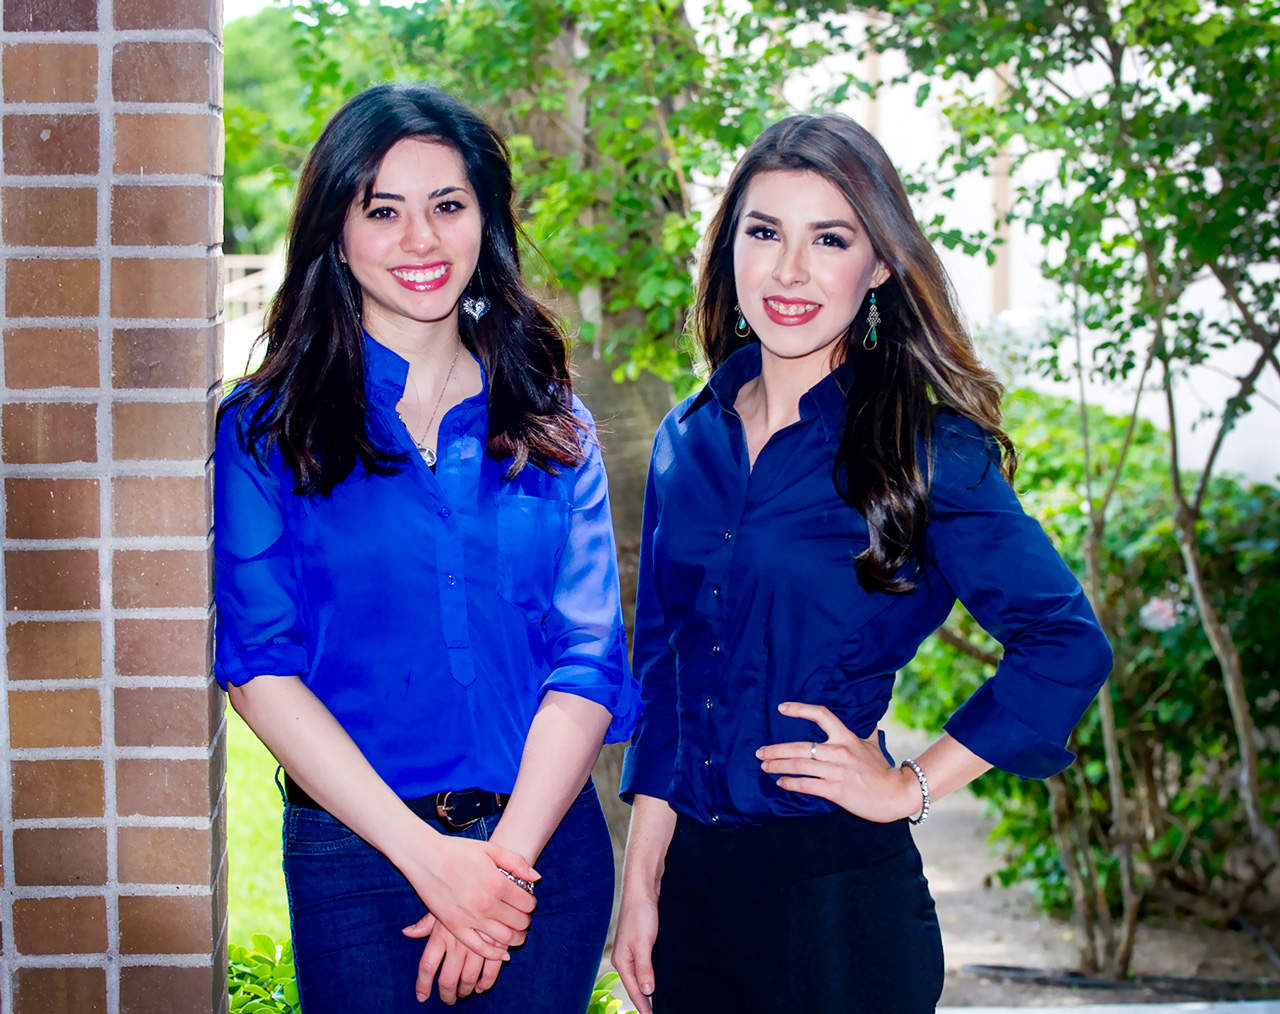 Gabriela Hernandez College Fashionista and Gabriela Hernndez of